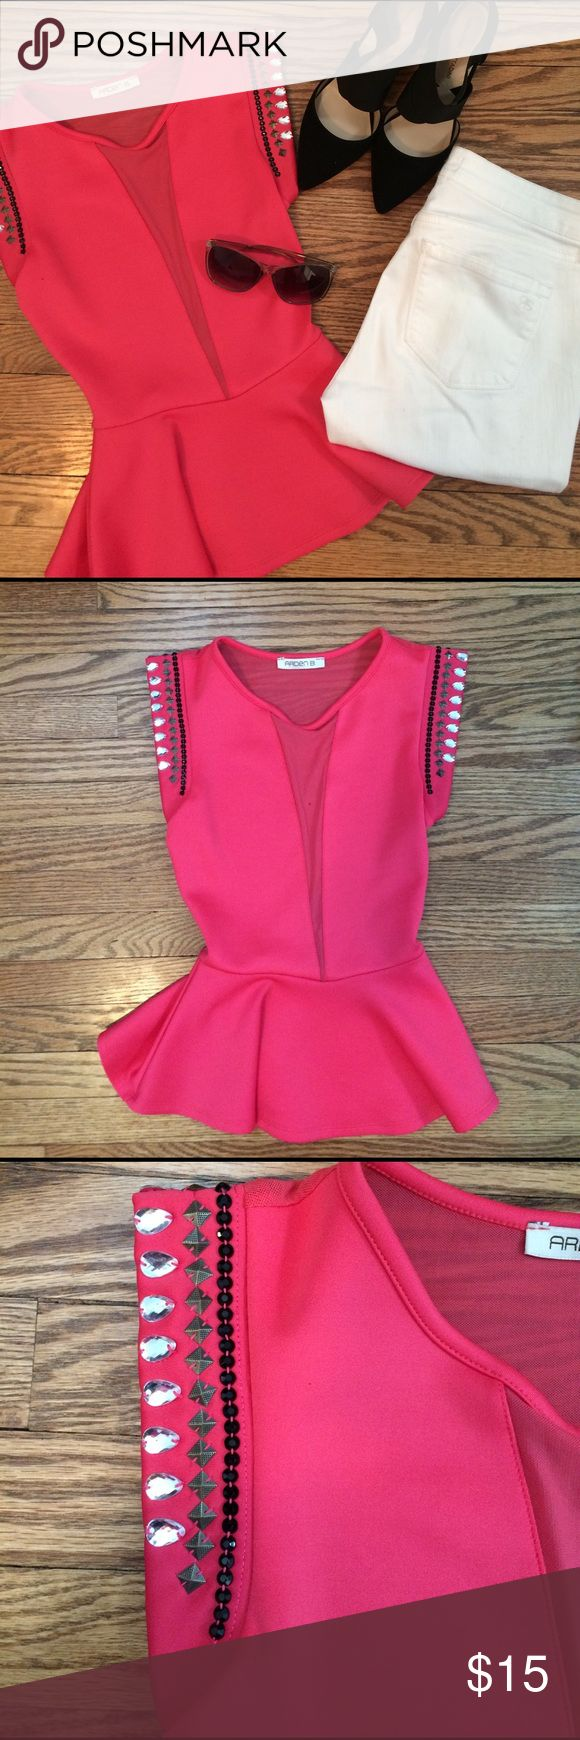 Glitzy Pink Peplum Top Sexy and glitzy pink peplum top with a sheer back and sheer slit in front. This is an eye catching top that will be sure to turn heads. There are some slight pulls in the back of the sheer fabric but mostly not noticeable. There is a small stain on the front (as pictured) but washing it or taking it to a cleaners would probably take it out! Arden B Tops